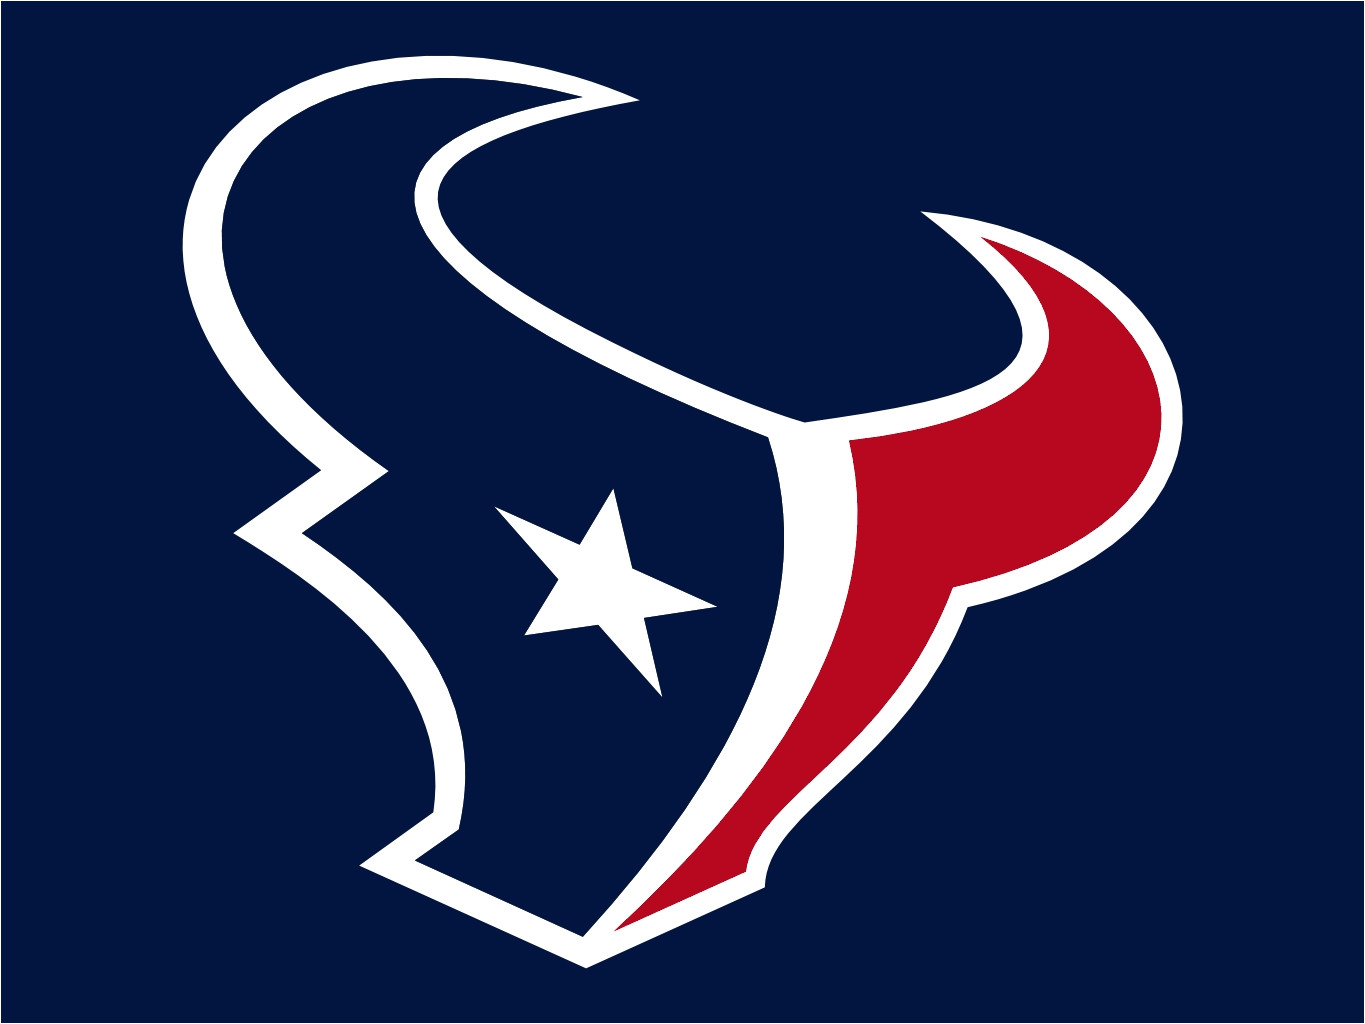 breathtaking houston texans logo template 58 for logo with houston texans logo template